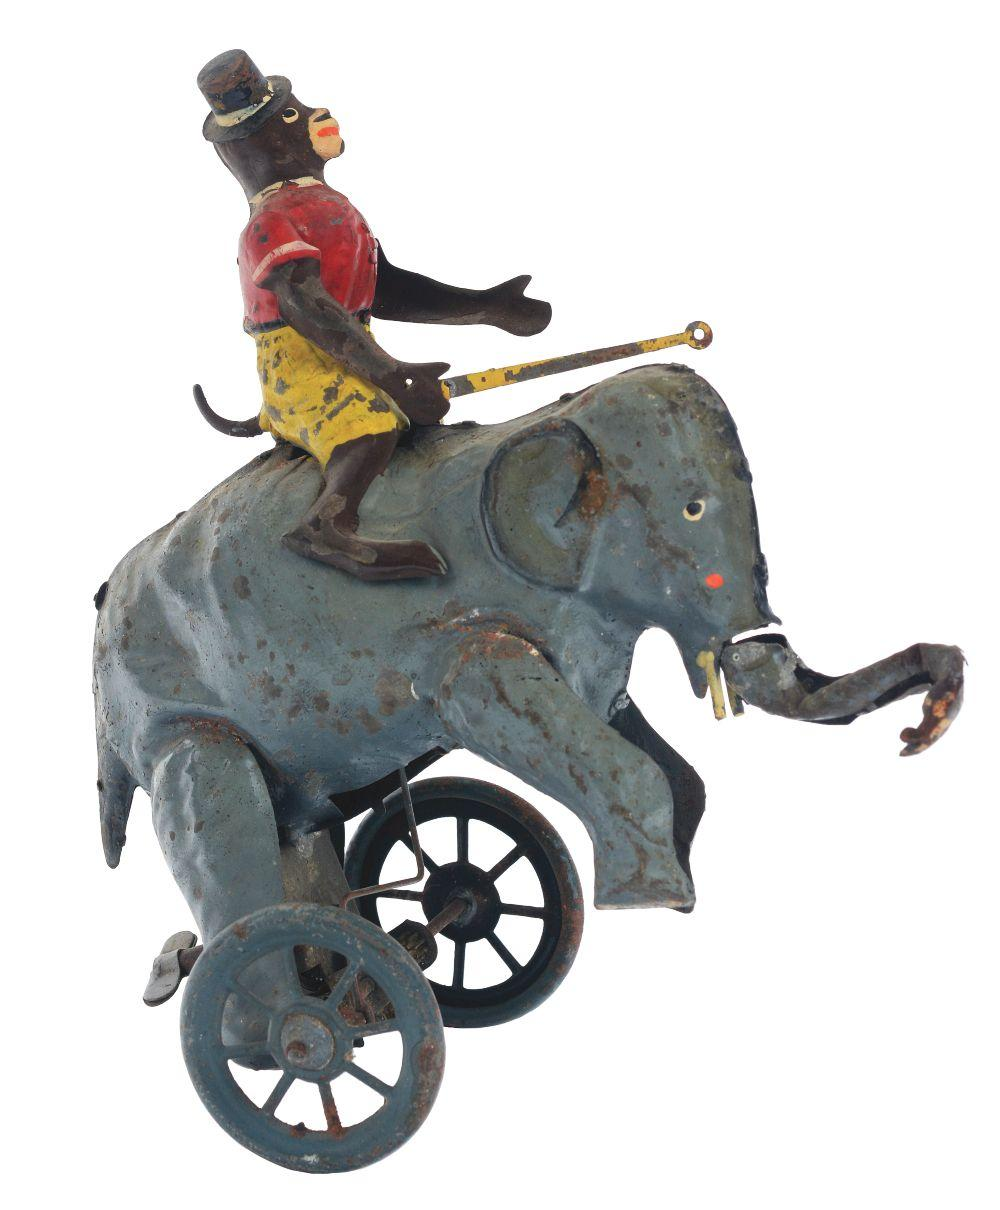 German Hand-Painted Wind-Up Monkey Riding Elephant Toy.